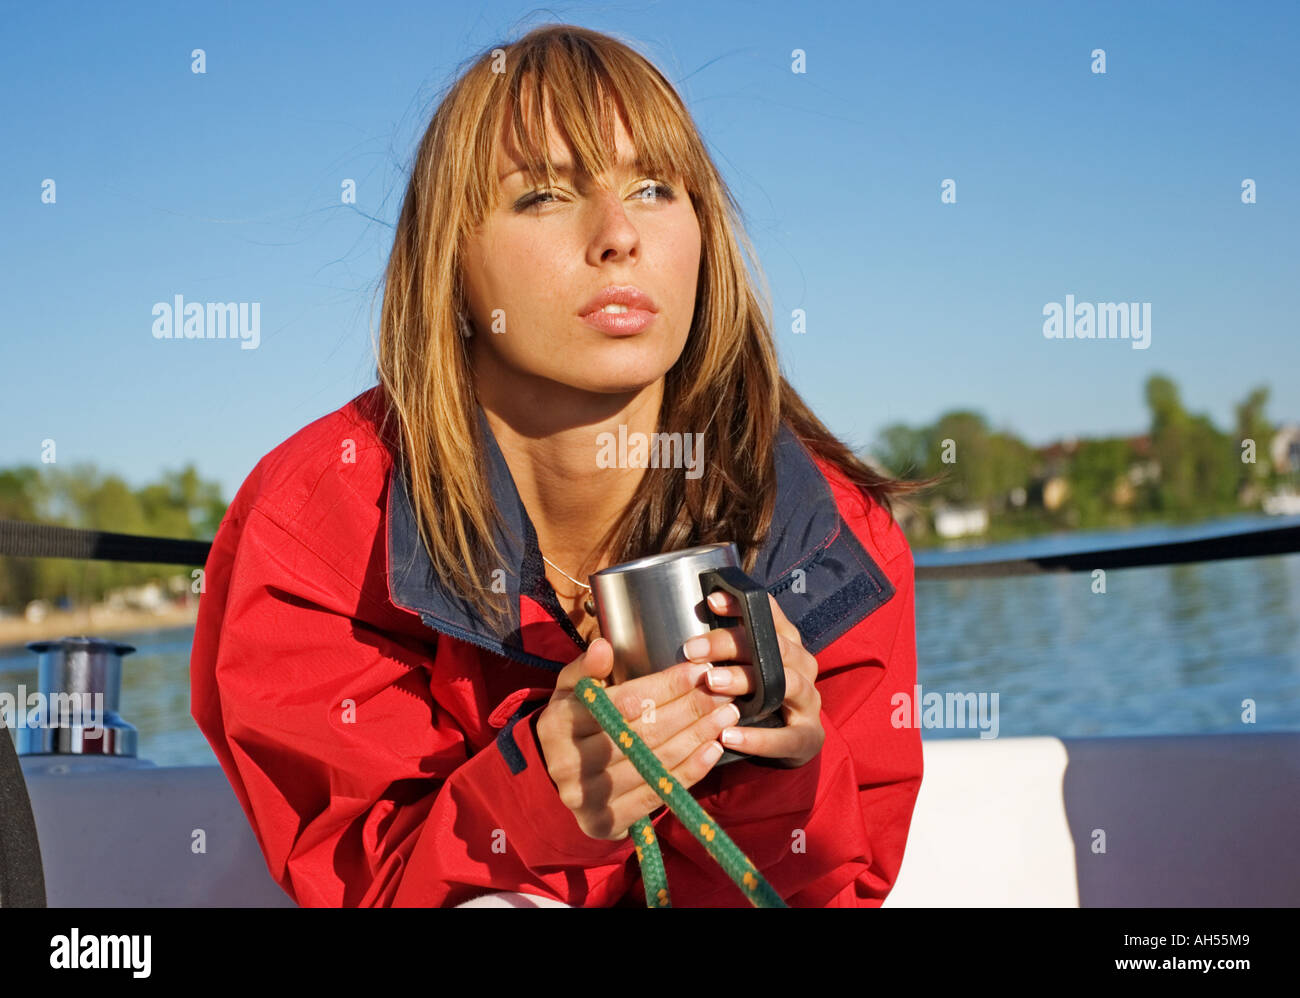 outdoor summer day country lake water woman mature 30 35 blonde long